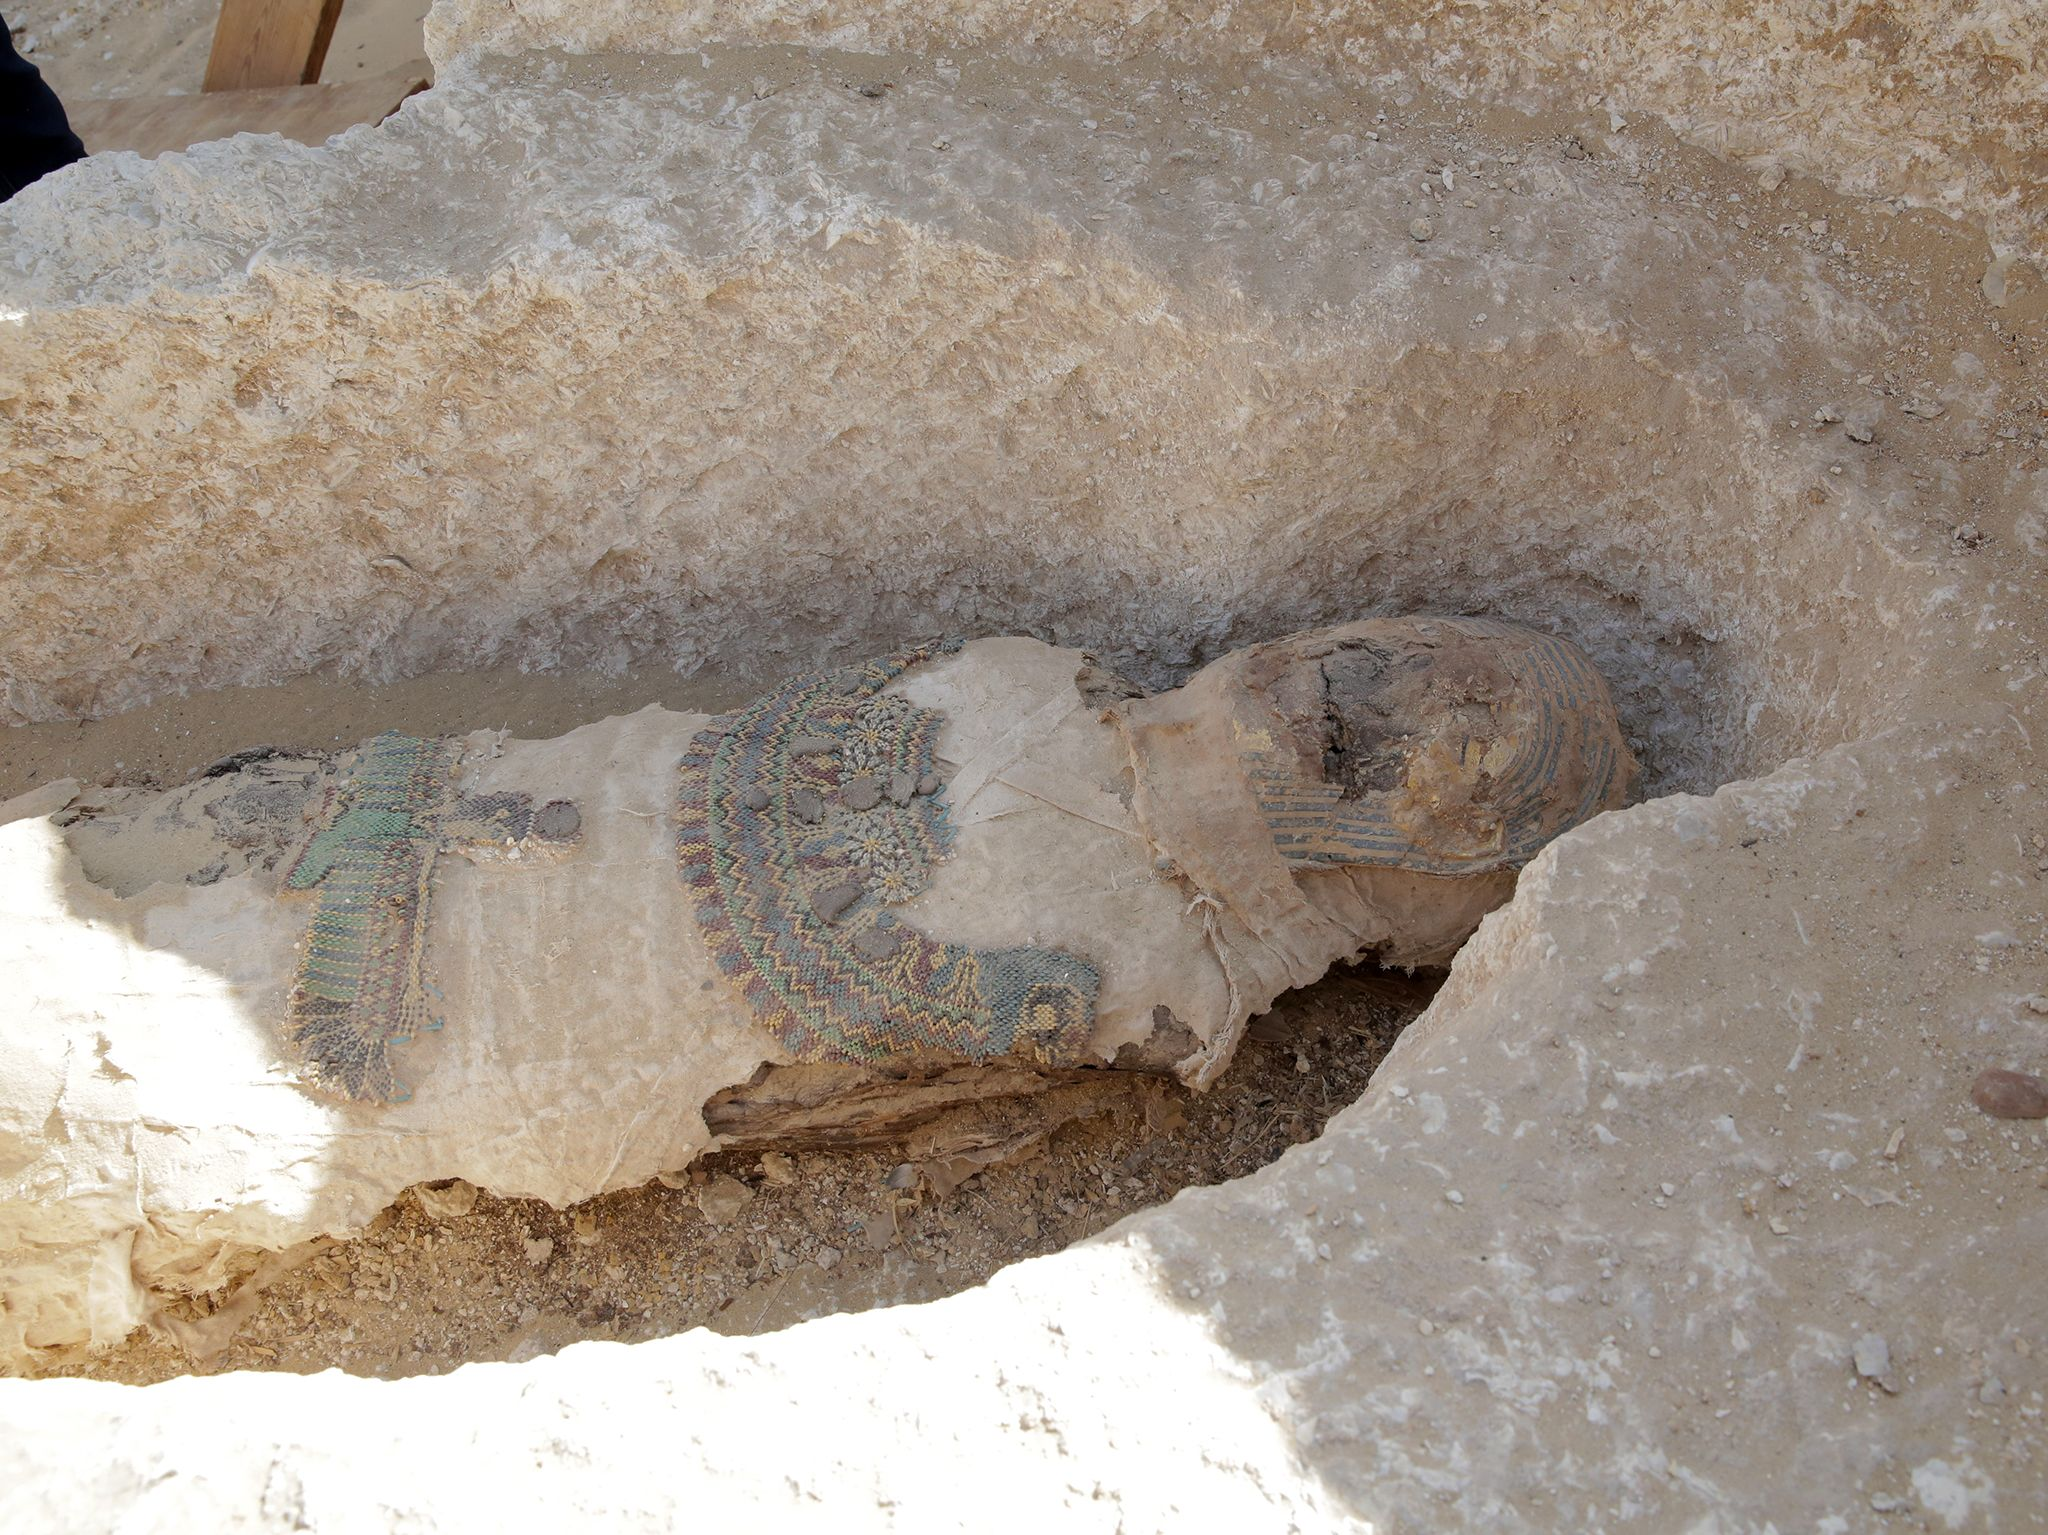 Open crypt with remains of a mummy still inside at the archaeological site of Tuna al Gabal.... [Photo of the day - April 2019]